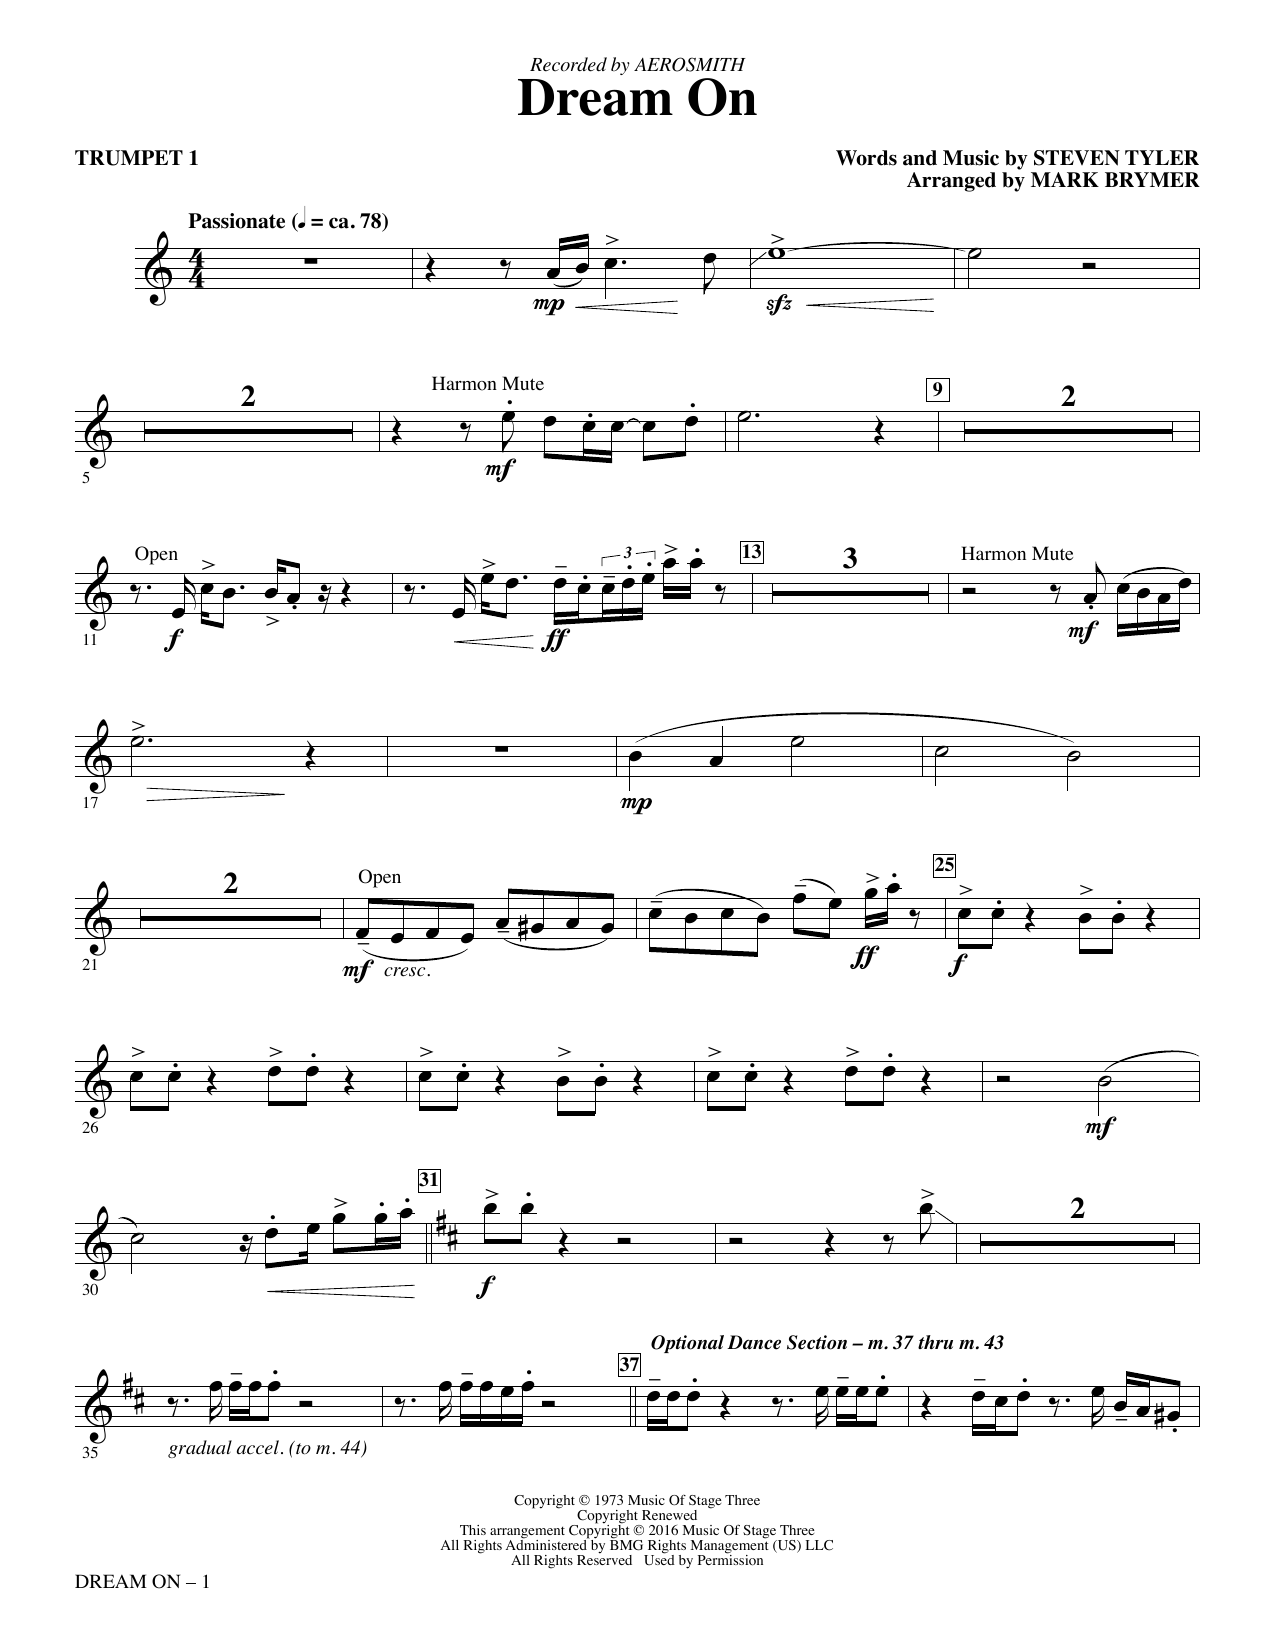 Aerosmith Dream On (arr. Mark Brymer) - Trumpet 1 sheet music notes and chords. Download Printable PDF.